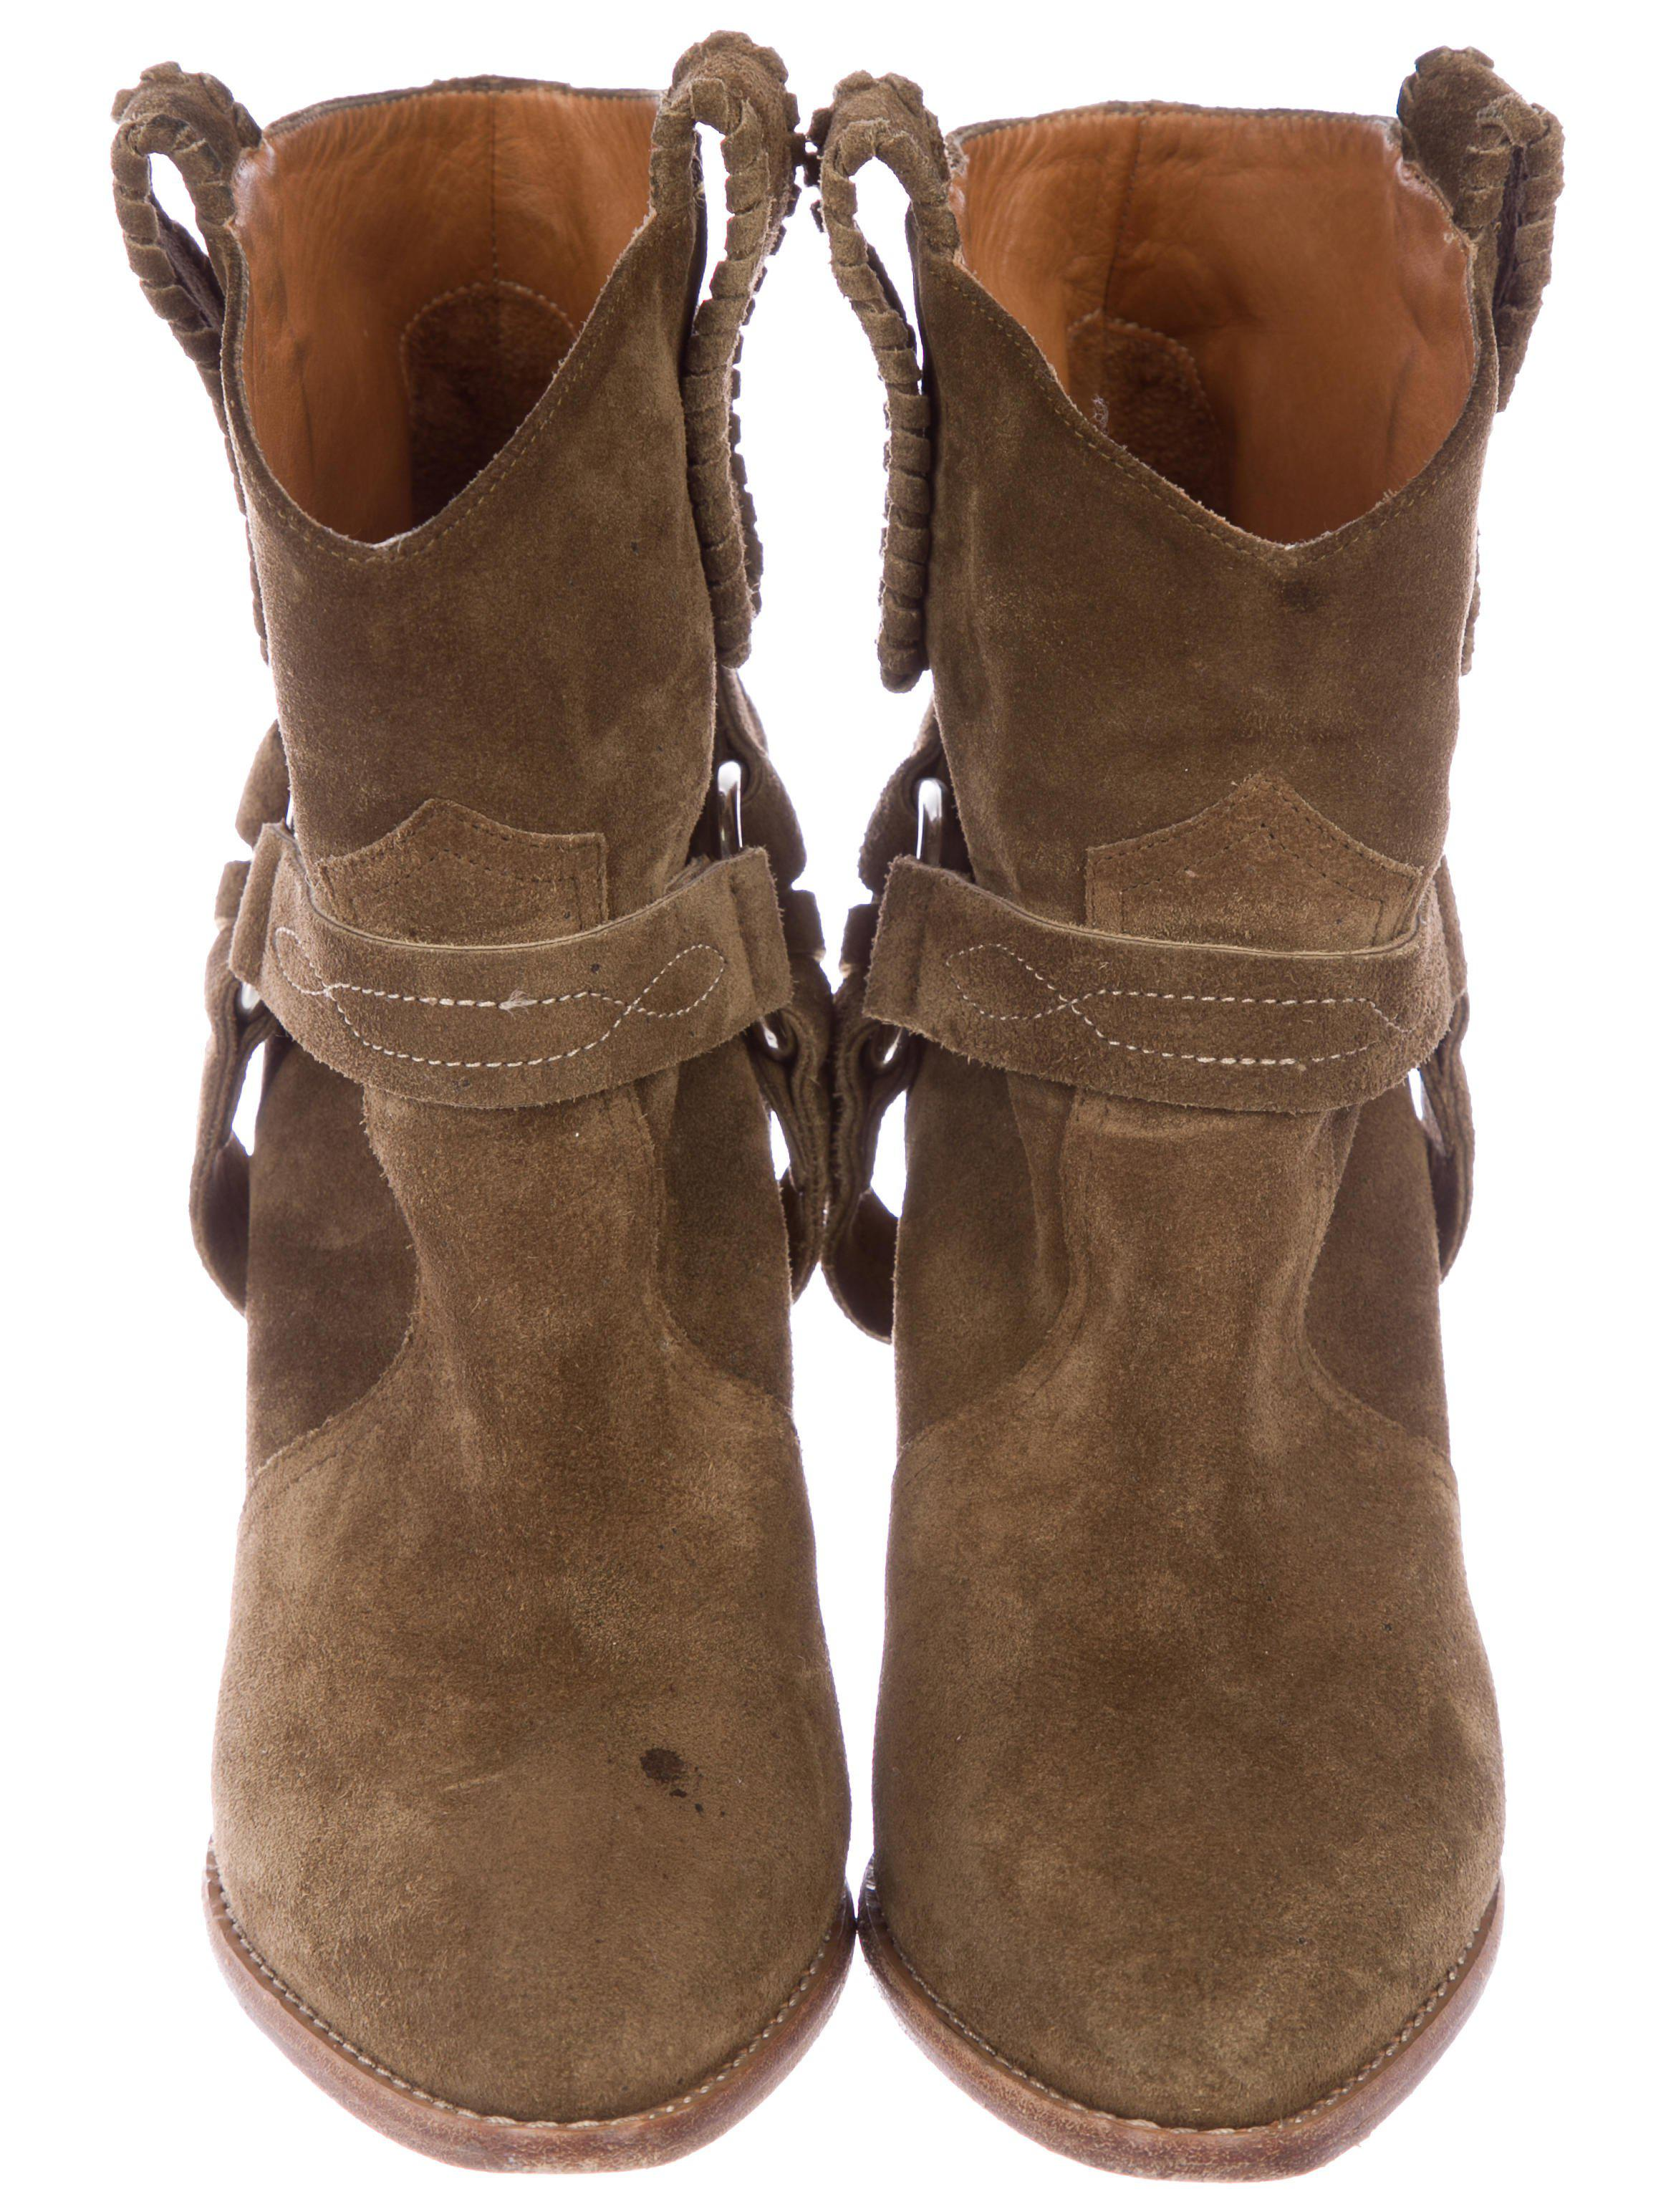 7f63d19a4a8 Lyst - Étoile Isabel Marant Suede Ankle Boots Brown in Metallic